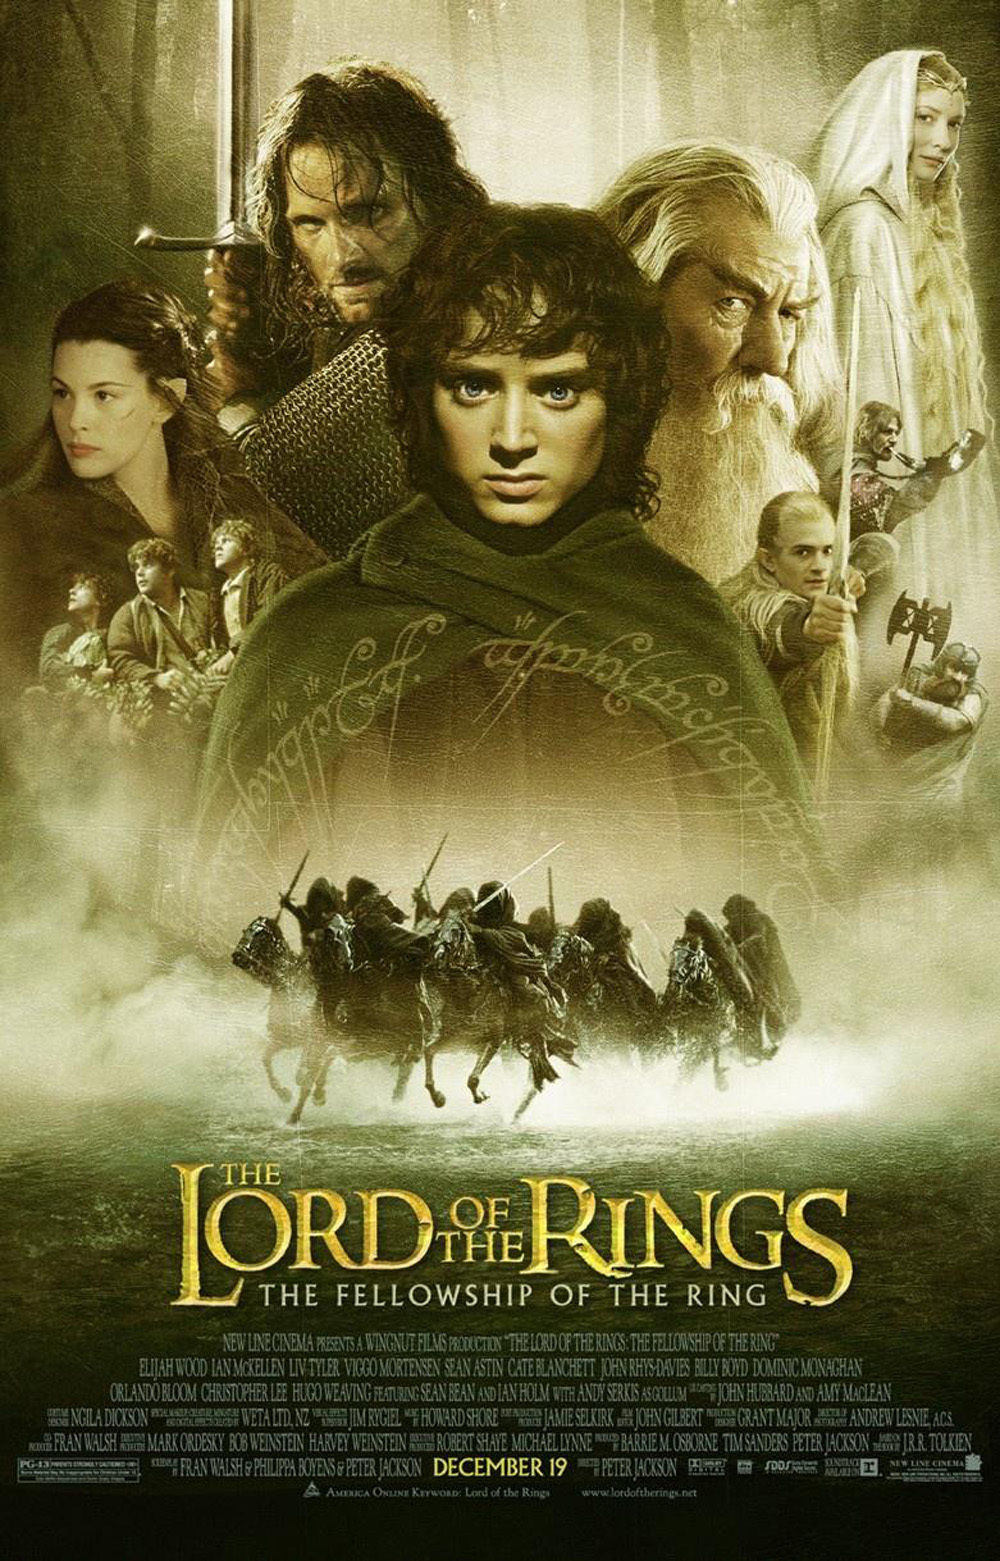 Download ~ The Lord of the Rings: The Fellowship of the Ring Full Length  Official Trailers hd quality short videos, clips, trailers the film, the  news.